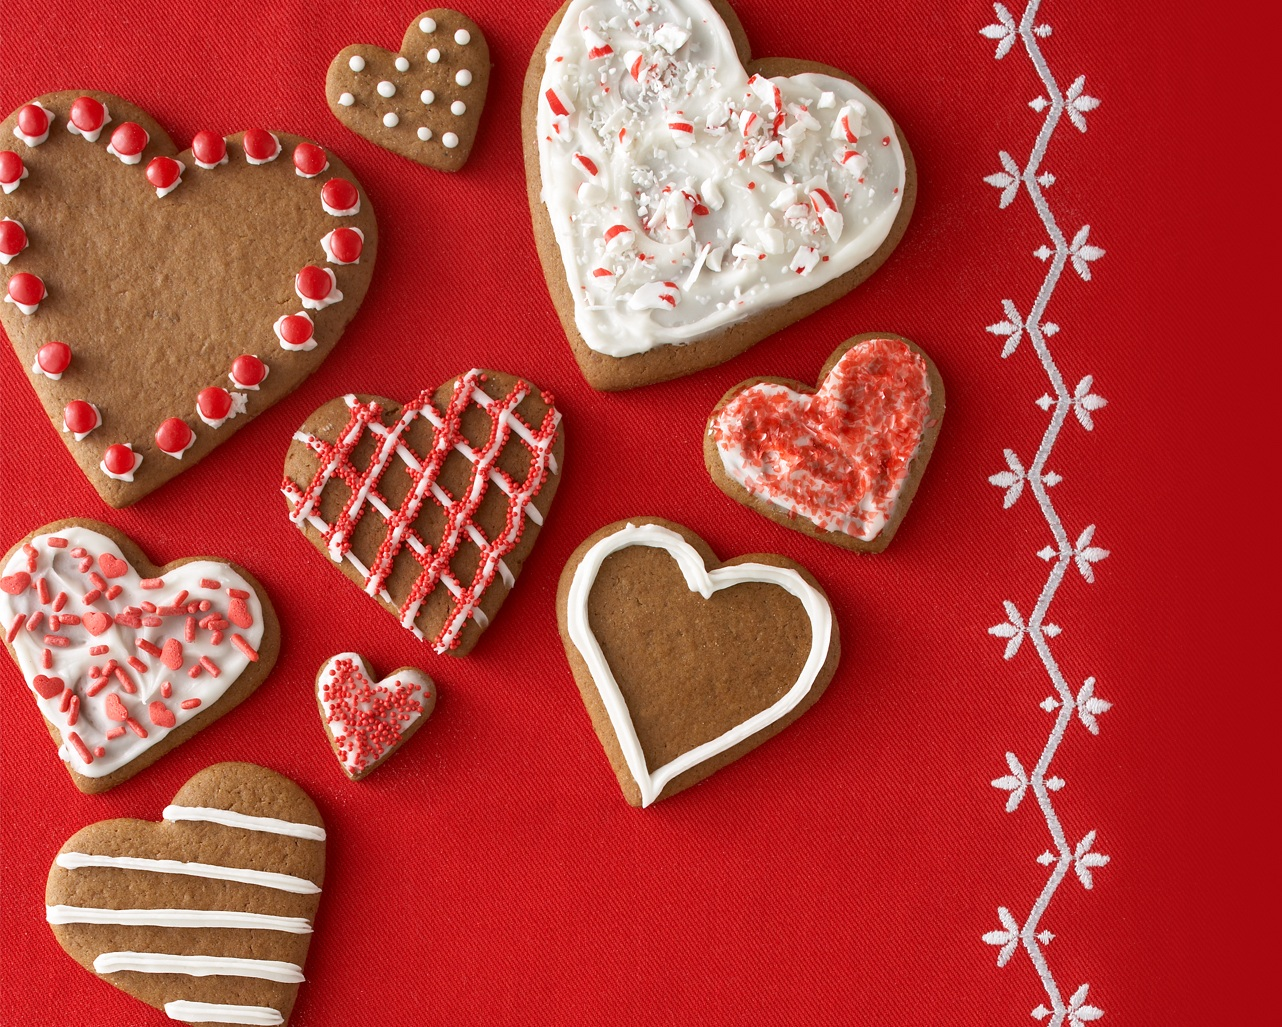 Valentines Day Desktop Backgrounds cute FREE eye candy 1282x1027